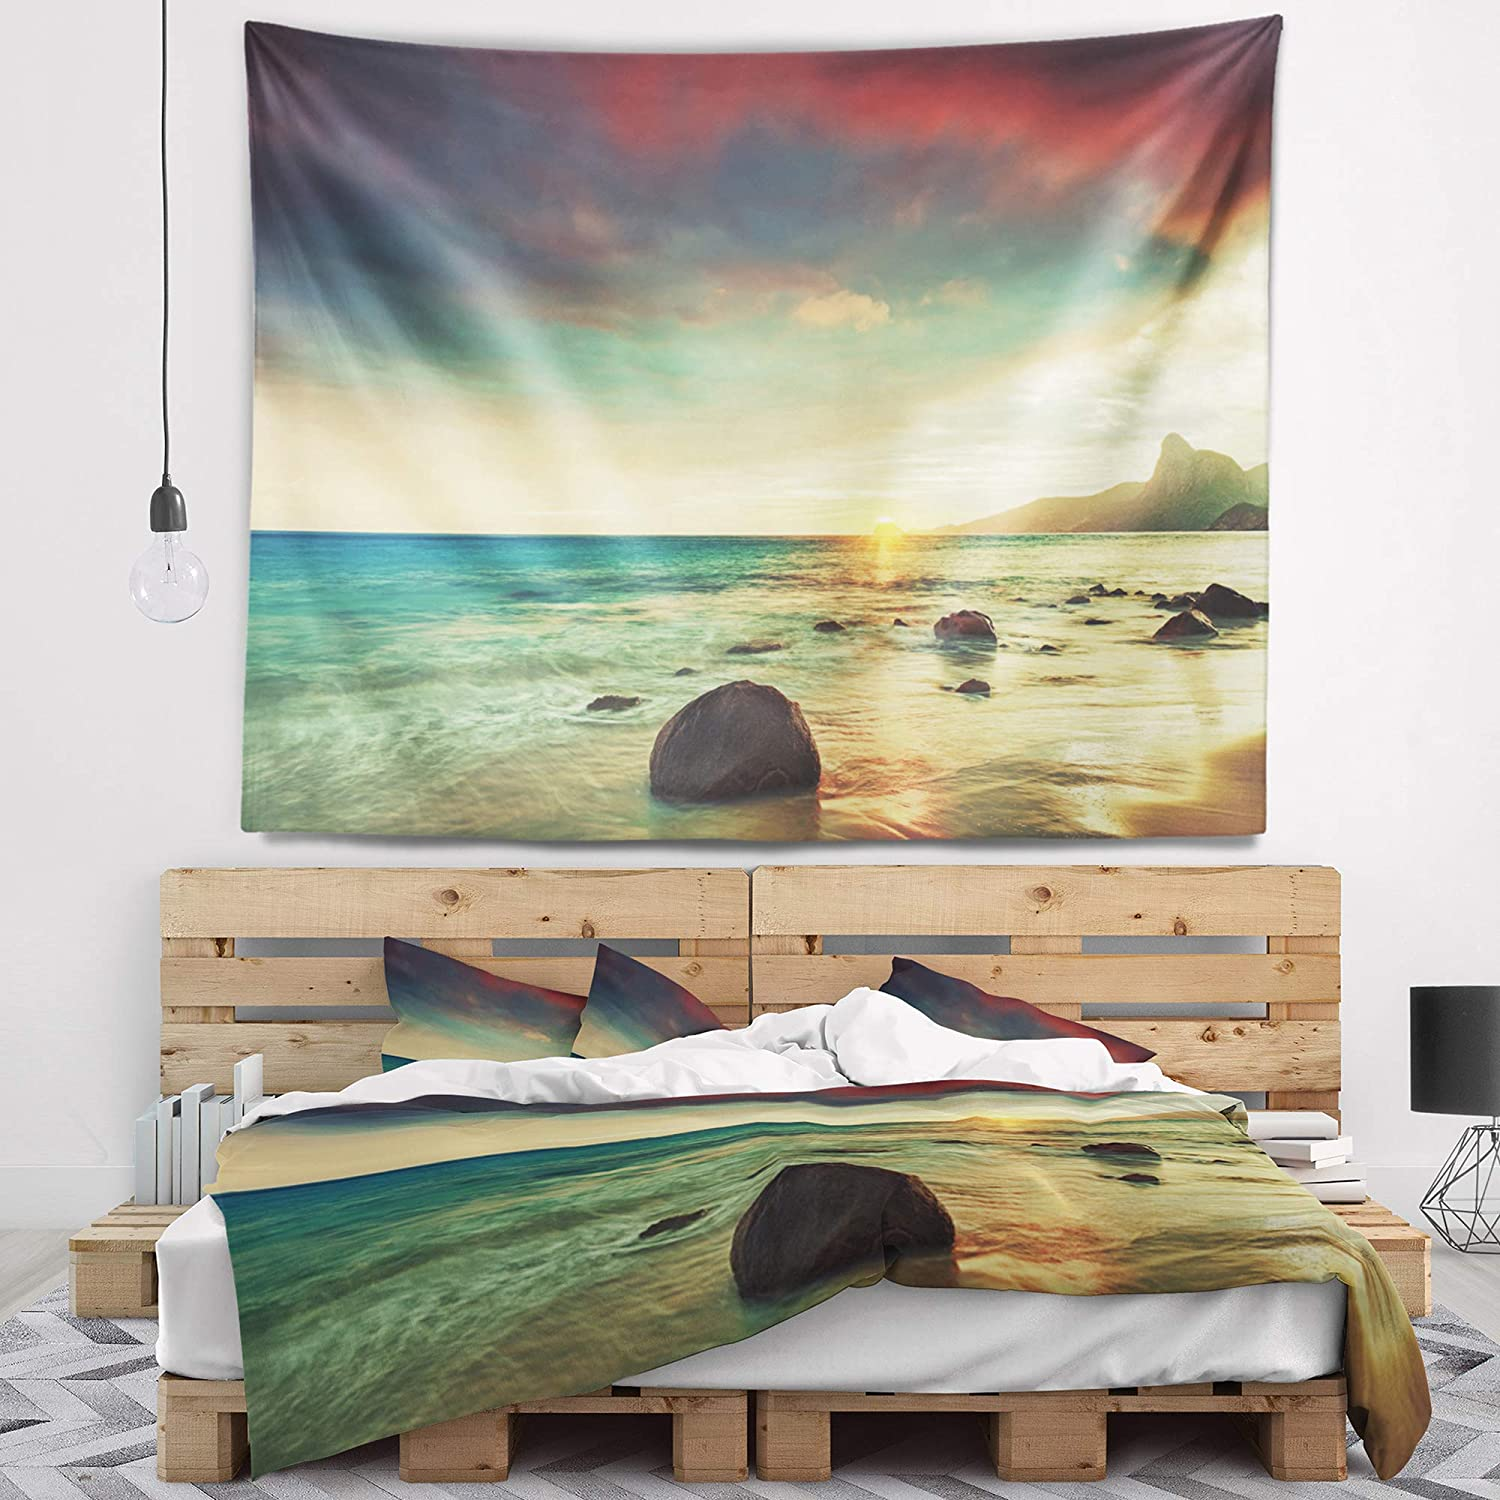 Large x 50 in. Designart TAP14850-60-50 Colorful Rocky Beach Seashore Tapestry Blanket D/écor Wall Art for Home and Office 60 in